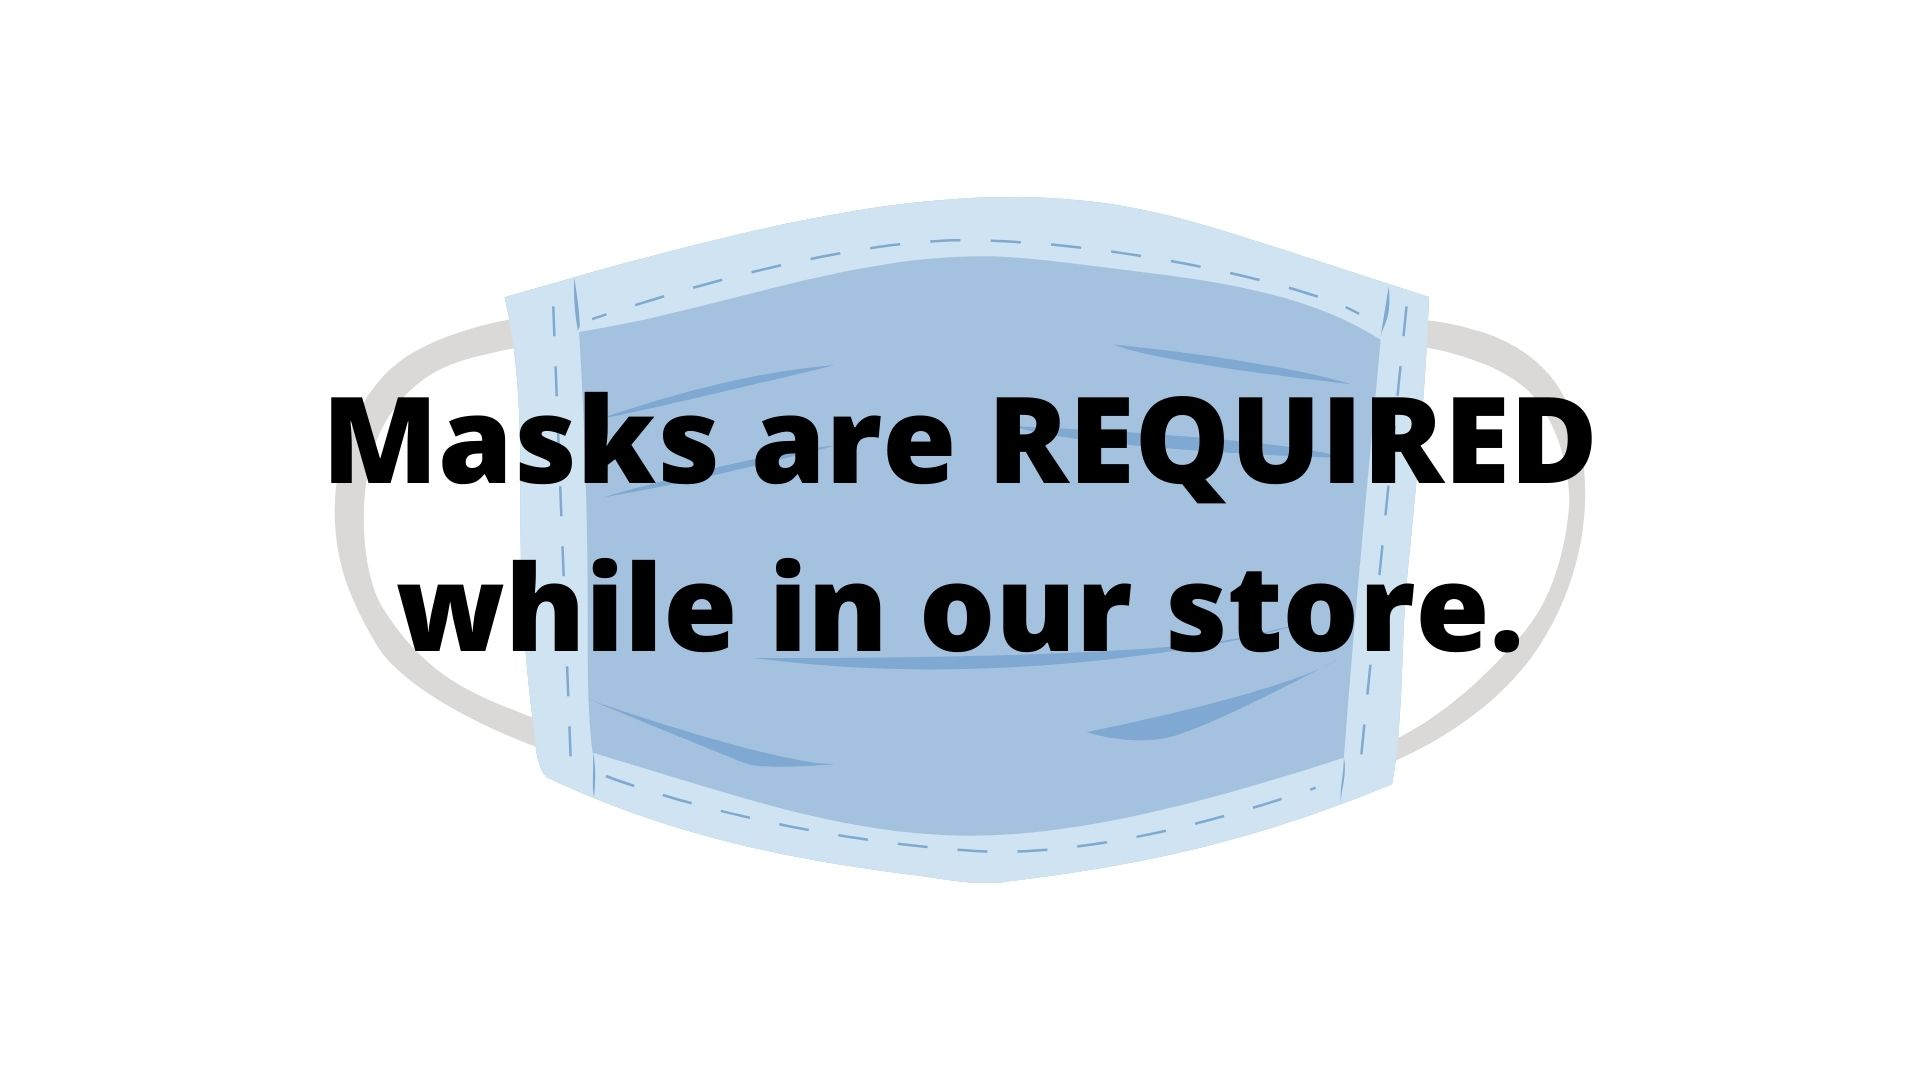 Masks are required while in our store.